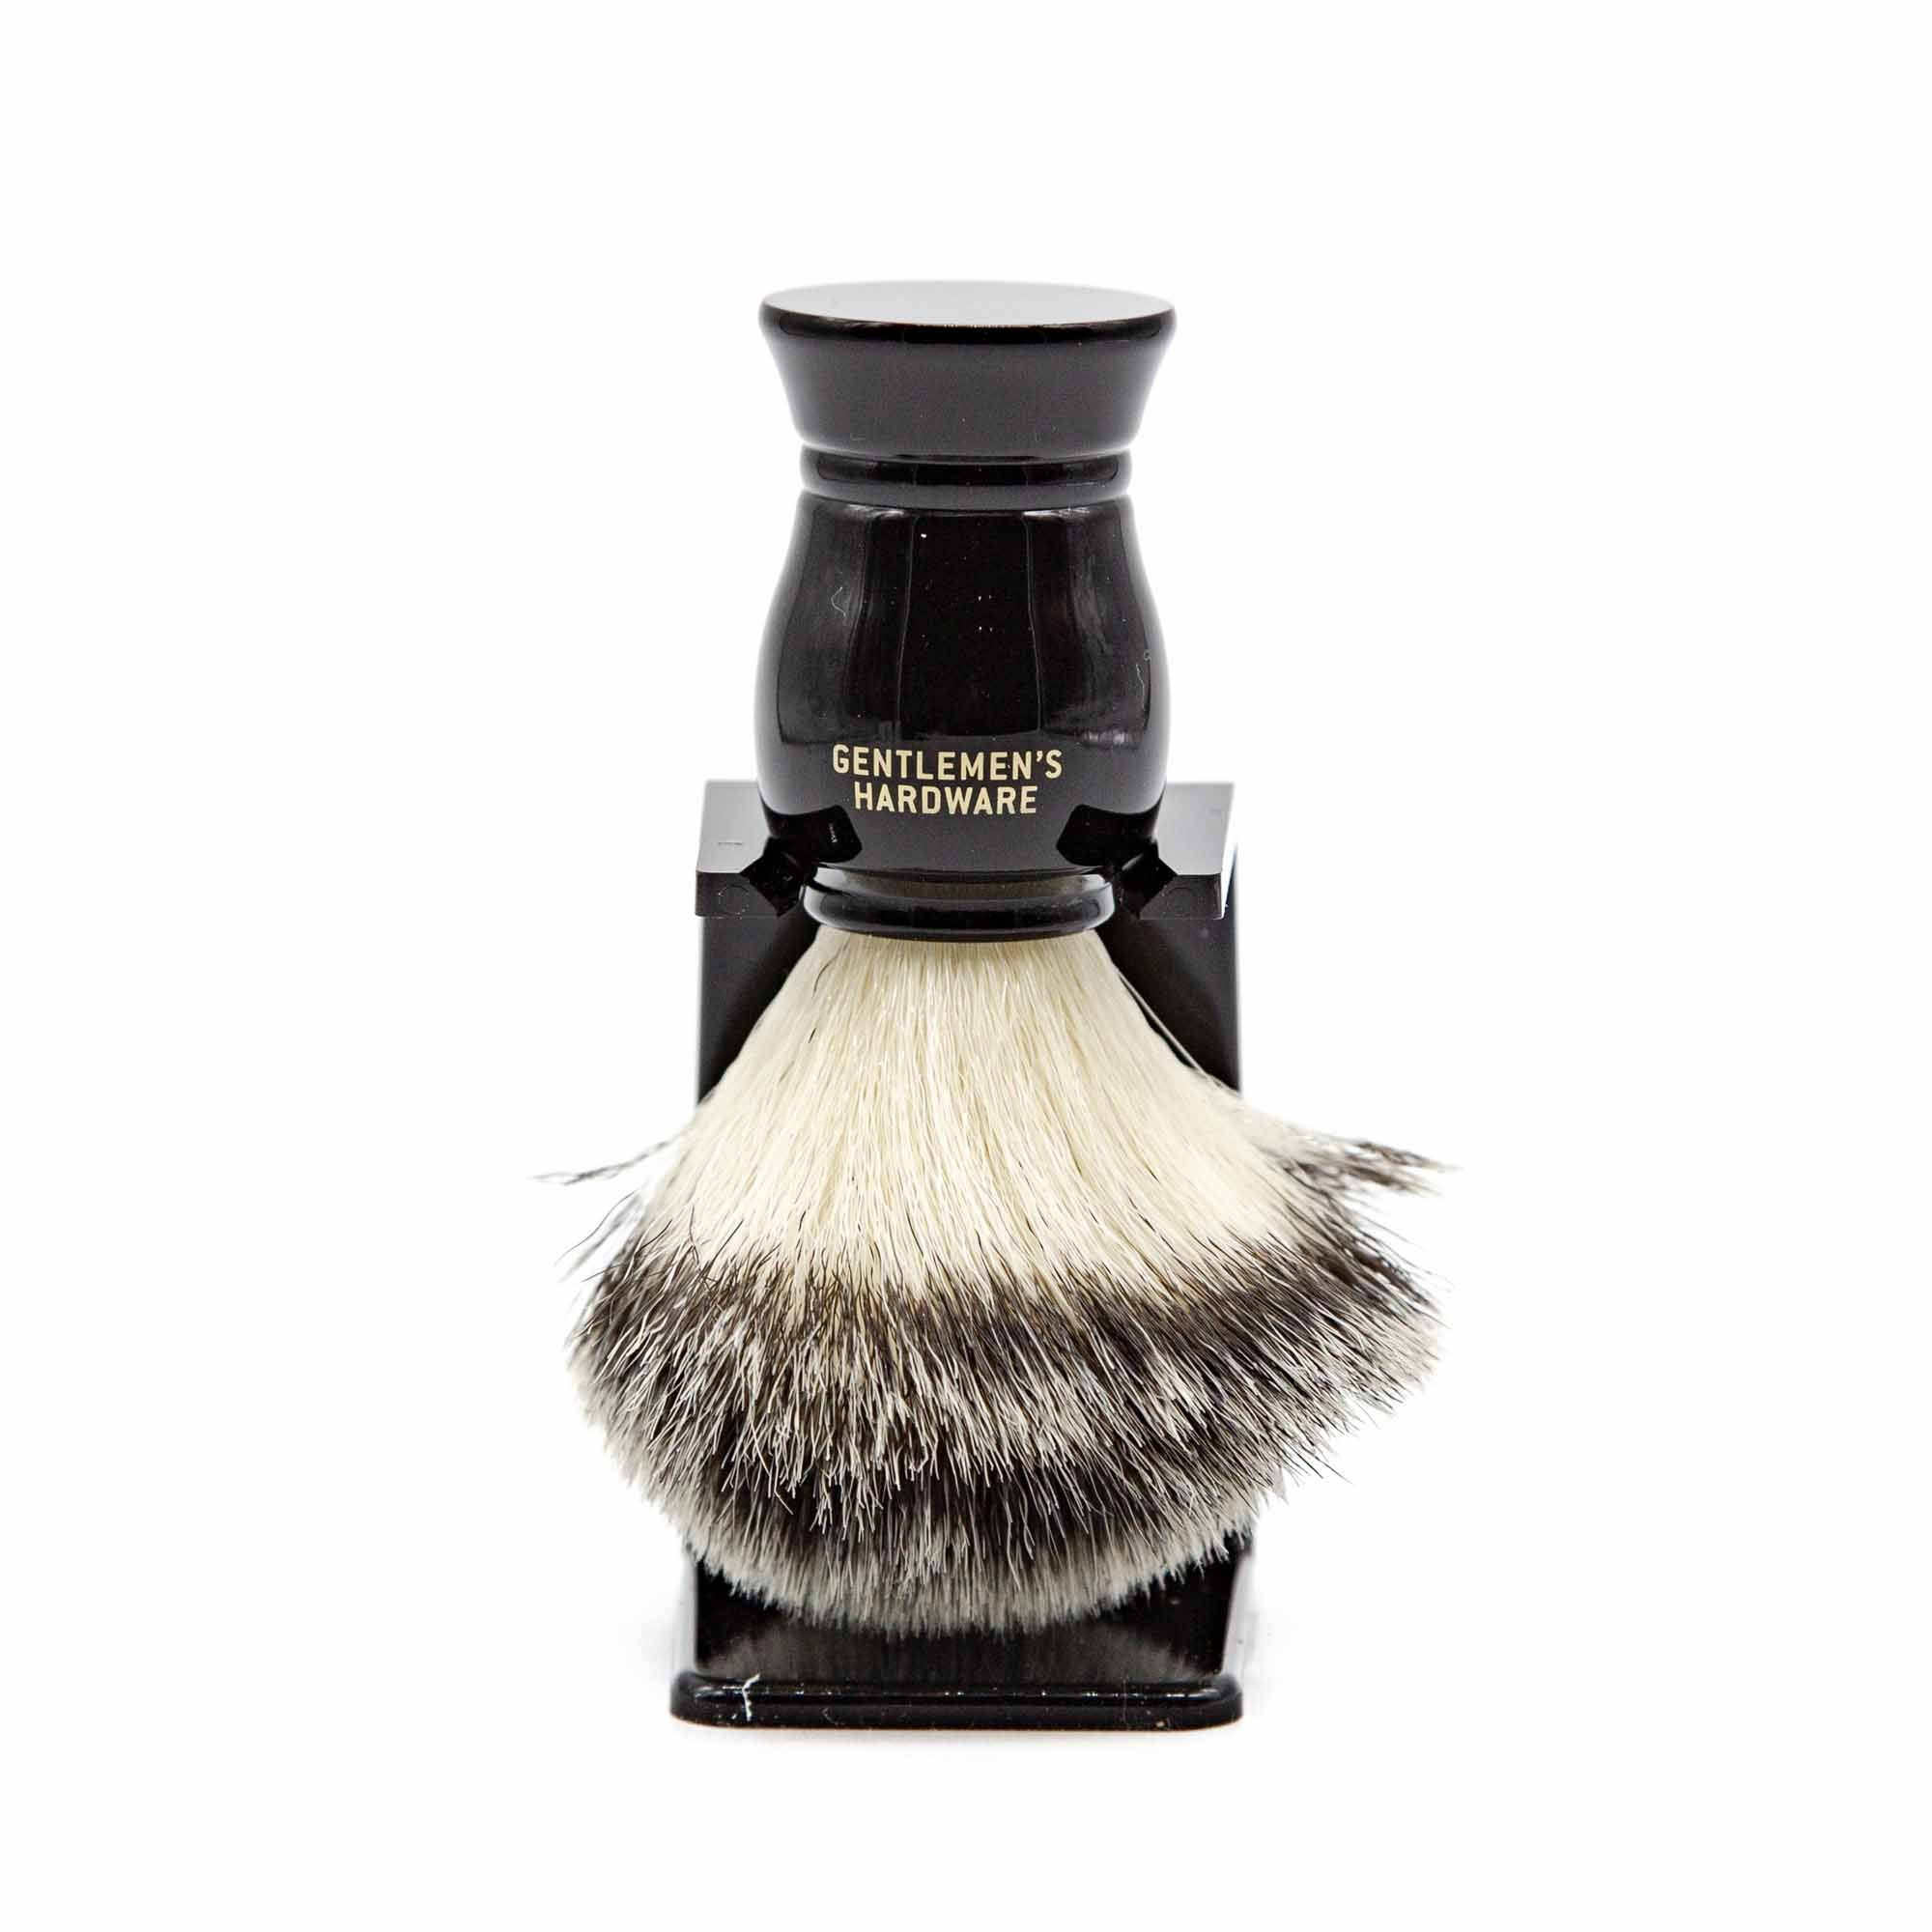 Gentlemen's Hardware Shave Brush & Stand - Mortise And Tenon